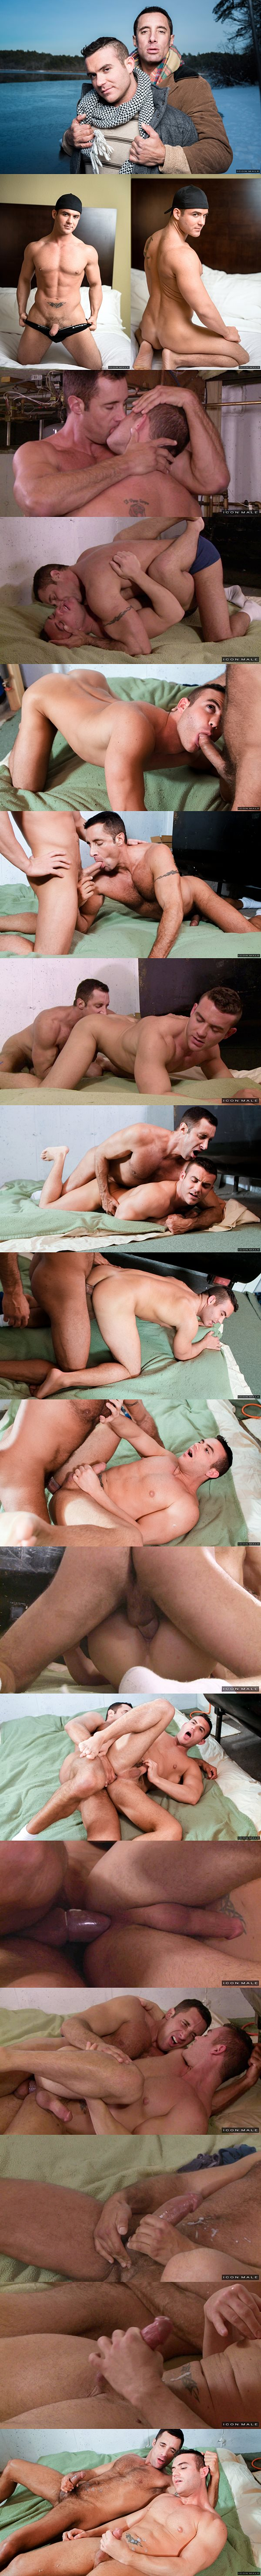 Nick Capra fucks Killian James in Fathers And Sons 4 at Iconmale 02